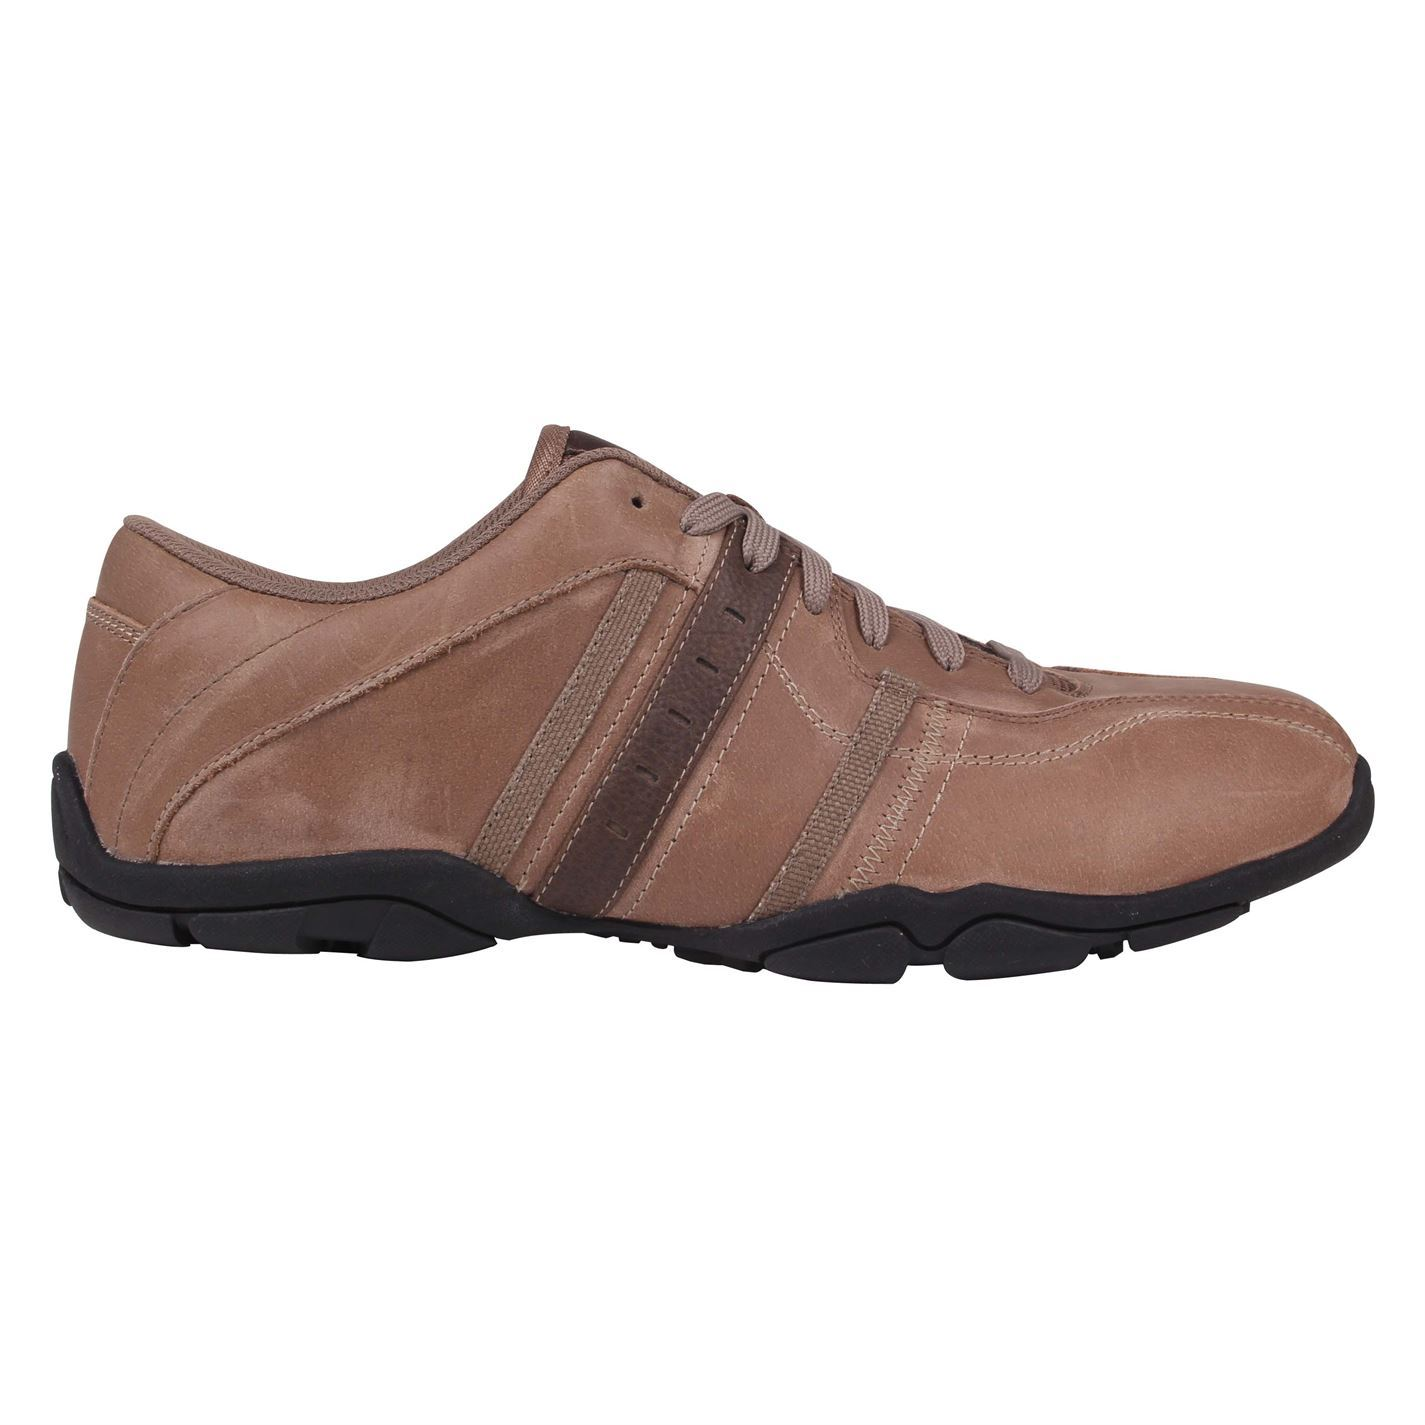 Kangol-Kauna-Trainers-Mens-Athleisure-Footwear-Shoes-Sneakers thumbnail 13